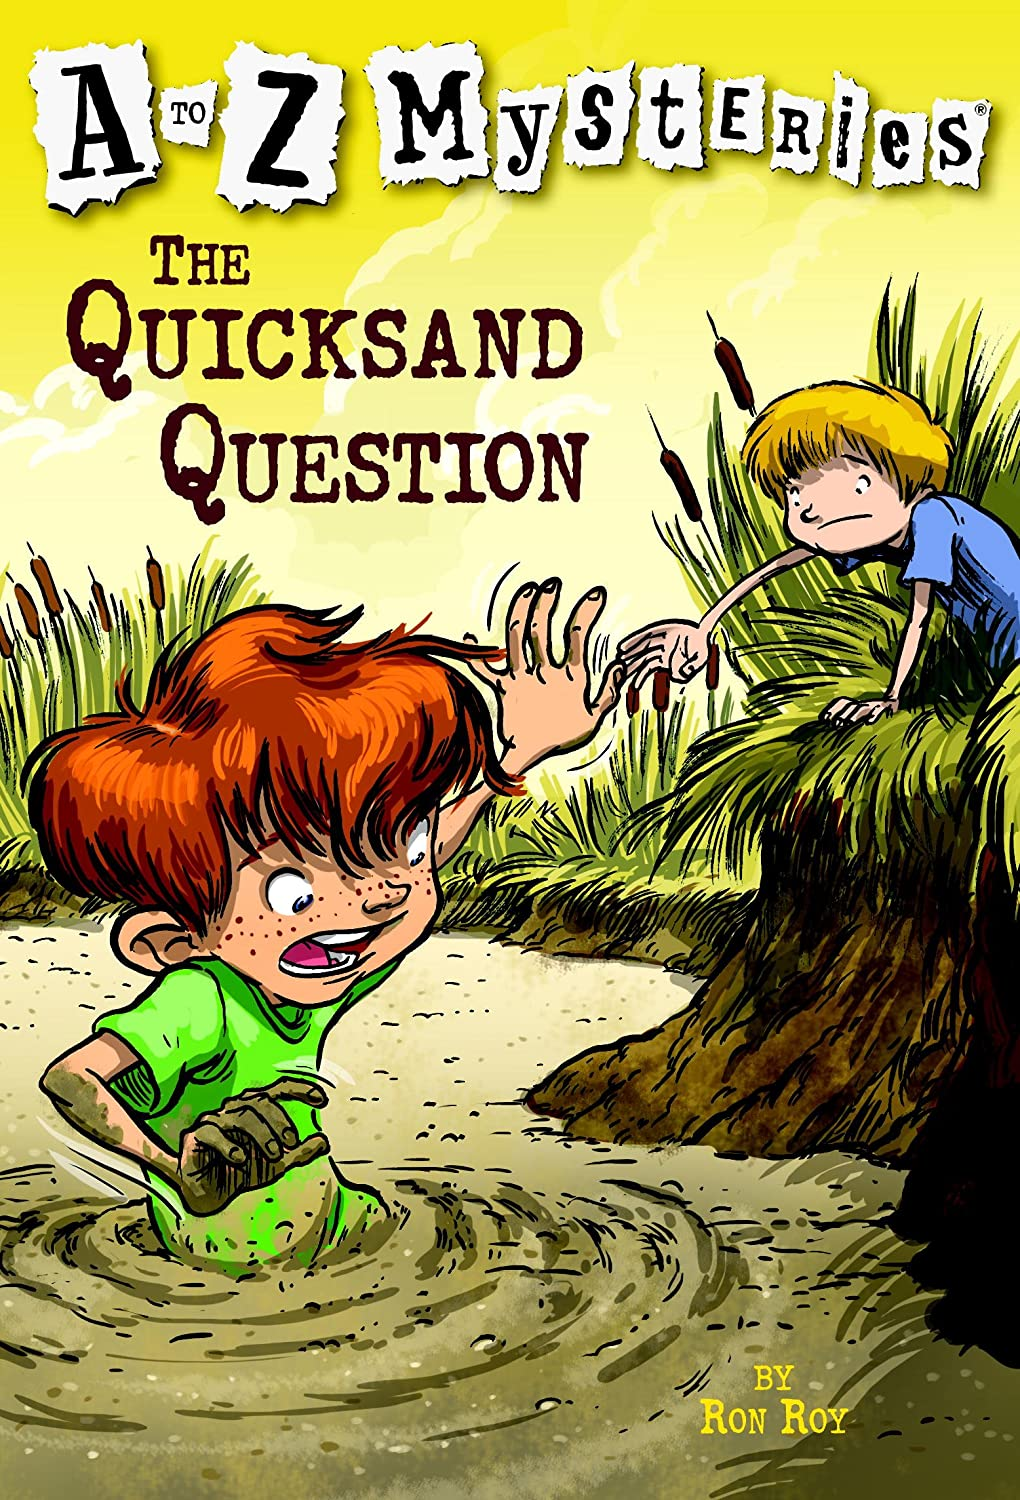 a to z mysteries: the quicksand question [kindle电子书]